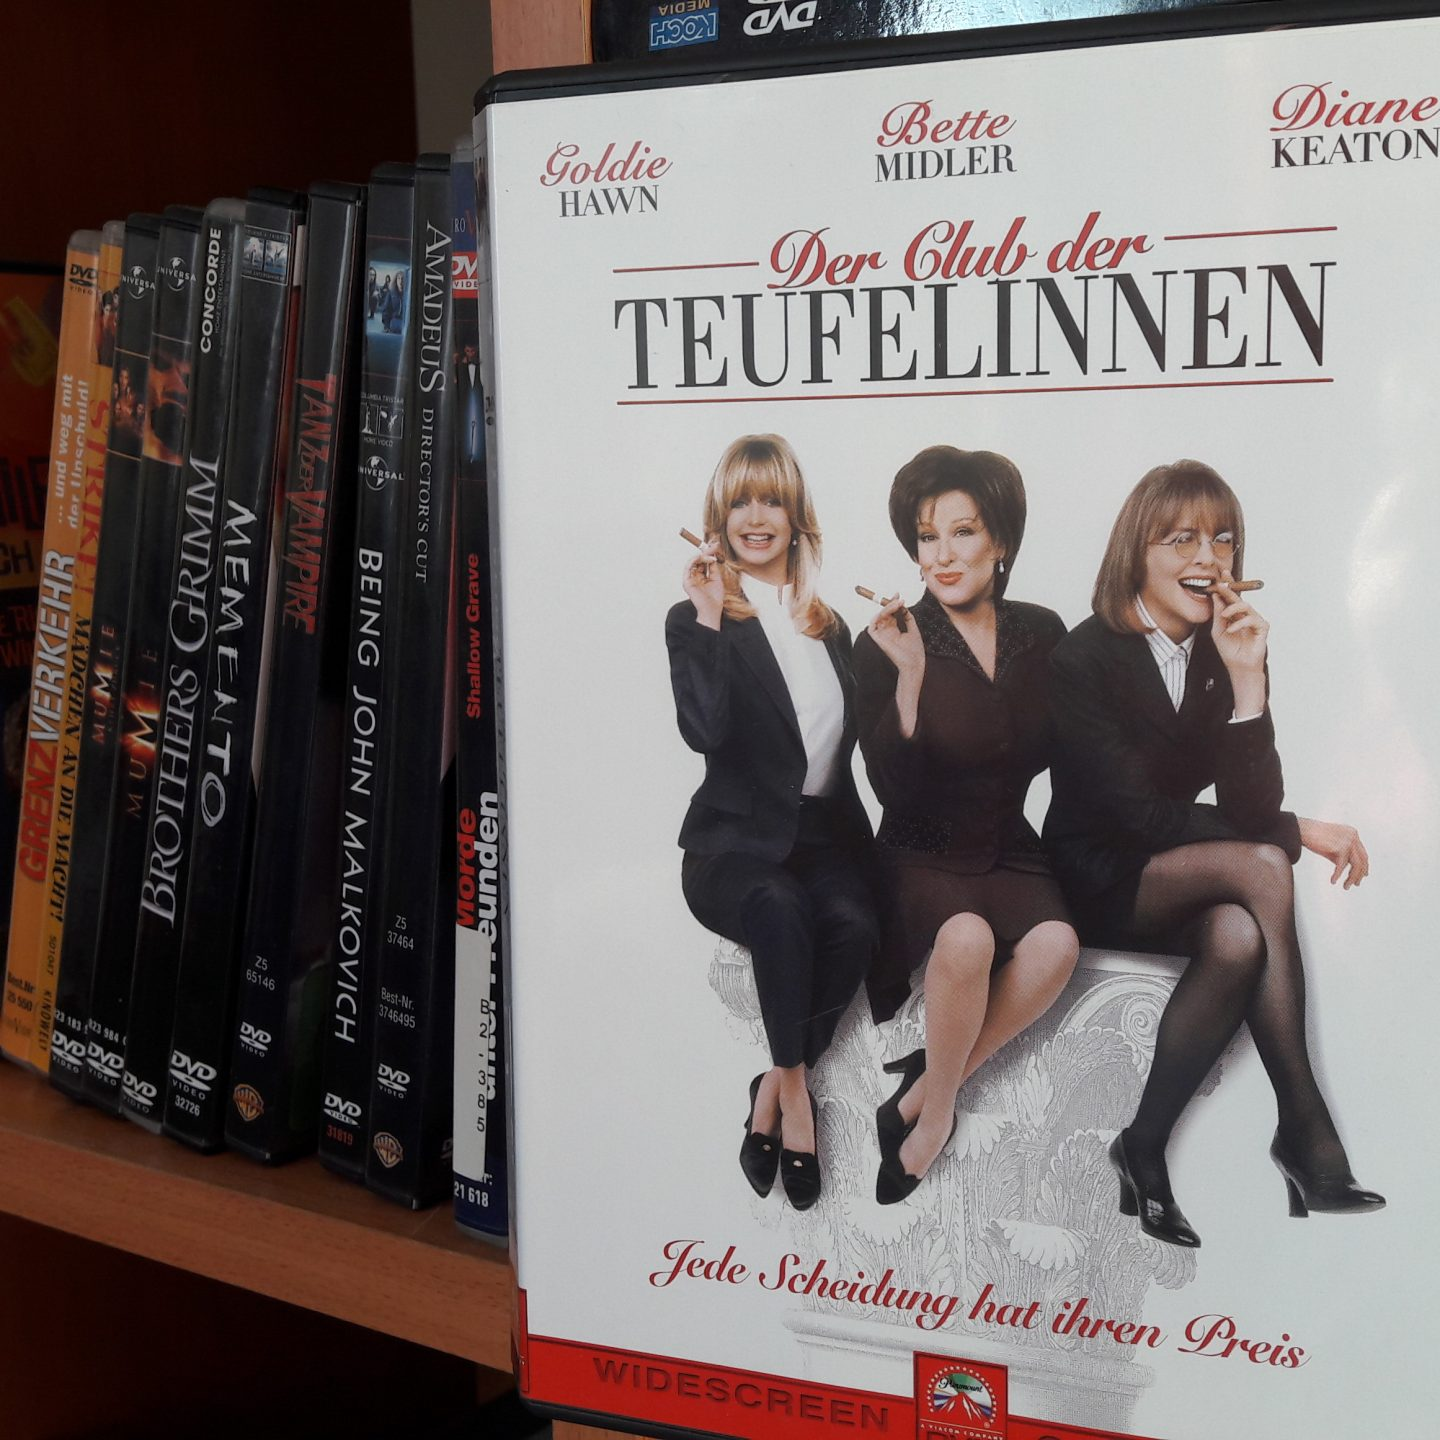 Reife Rächerinnen: The First Wives Club